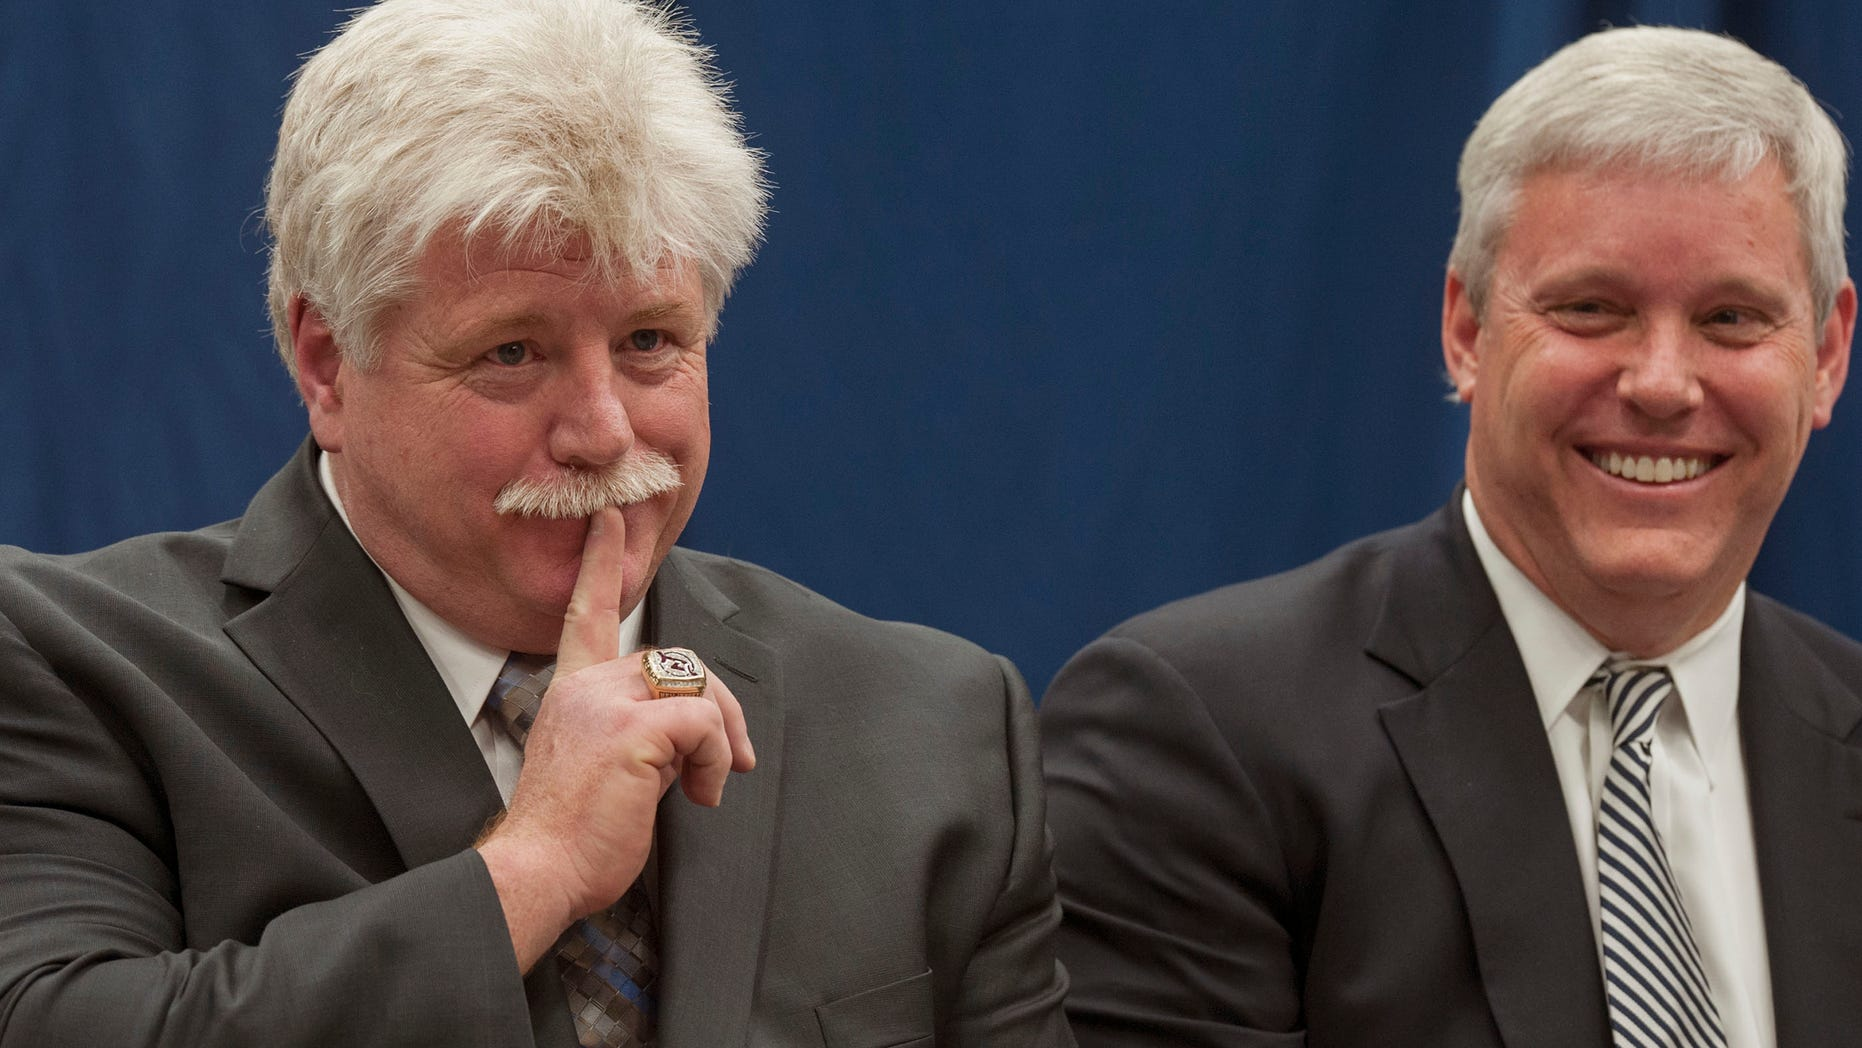 """Dennis """"Red"""" Gendron, left, gestures animatedly during a press conference where he was introduced as the new men's hockey coach by Athletic Director Steve Abbott, right, at the University of Maine, Tuesday, May 28, 2013, in Orono, Maine.  (AP Photo/Michael C. York)"""